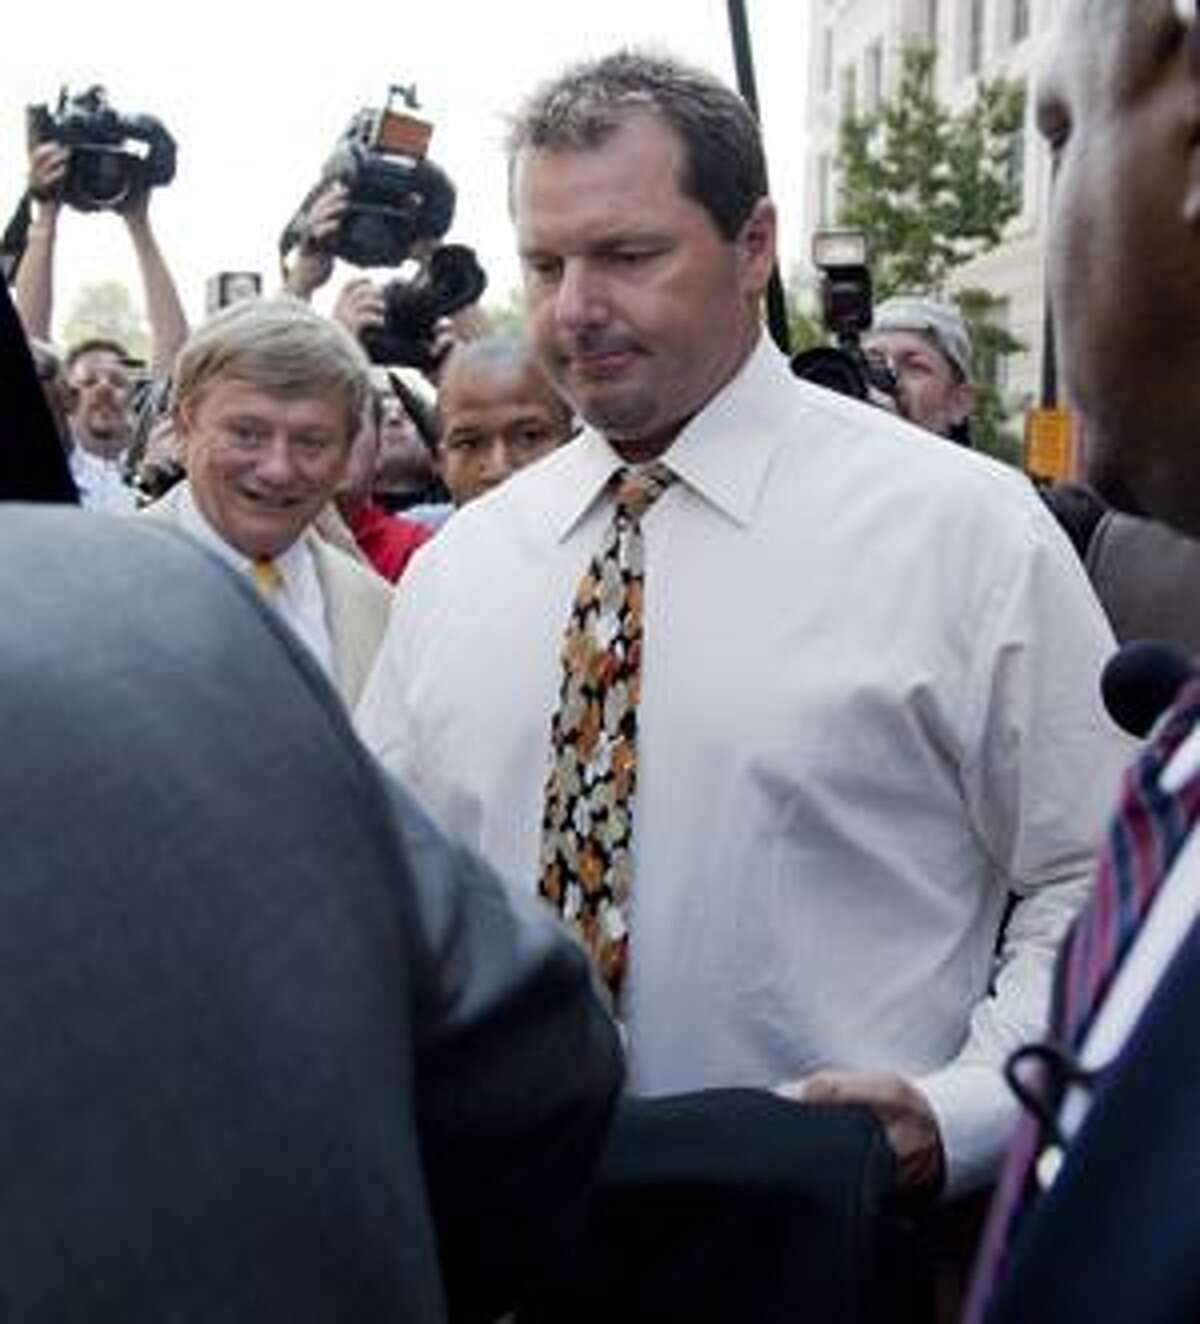 Seven-time Cy Young winner, baseball pitcher Roger Clemens leaves federal court in Washington, Monday, Aug. 30, 2010, after pleading not guilty to charges of lying to Congress about whether he used steroids or human growth hormone. His attorney Rusty Hardin is at left. (AP Photo/Evan Vucci)